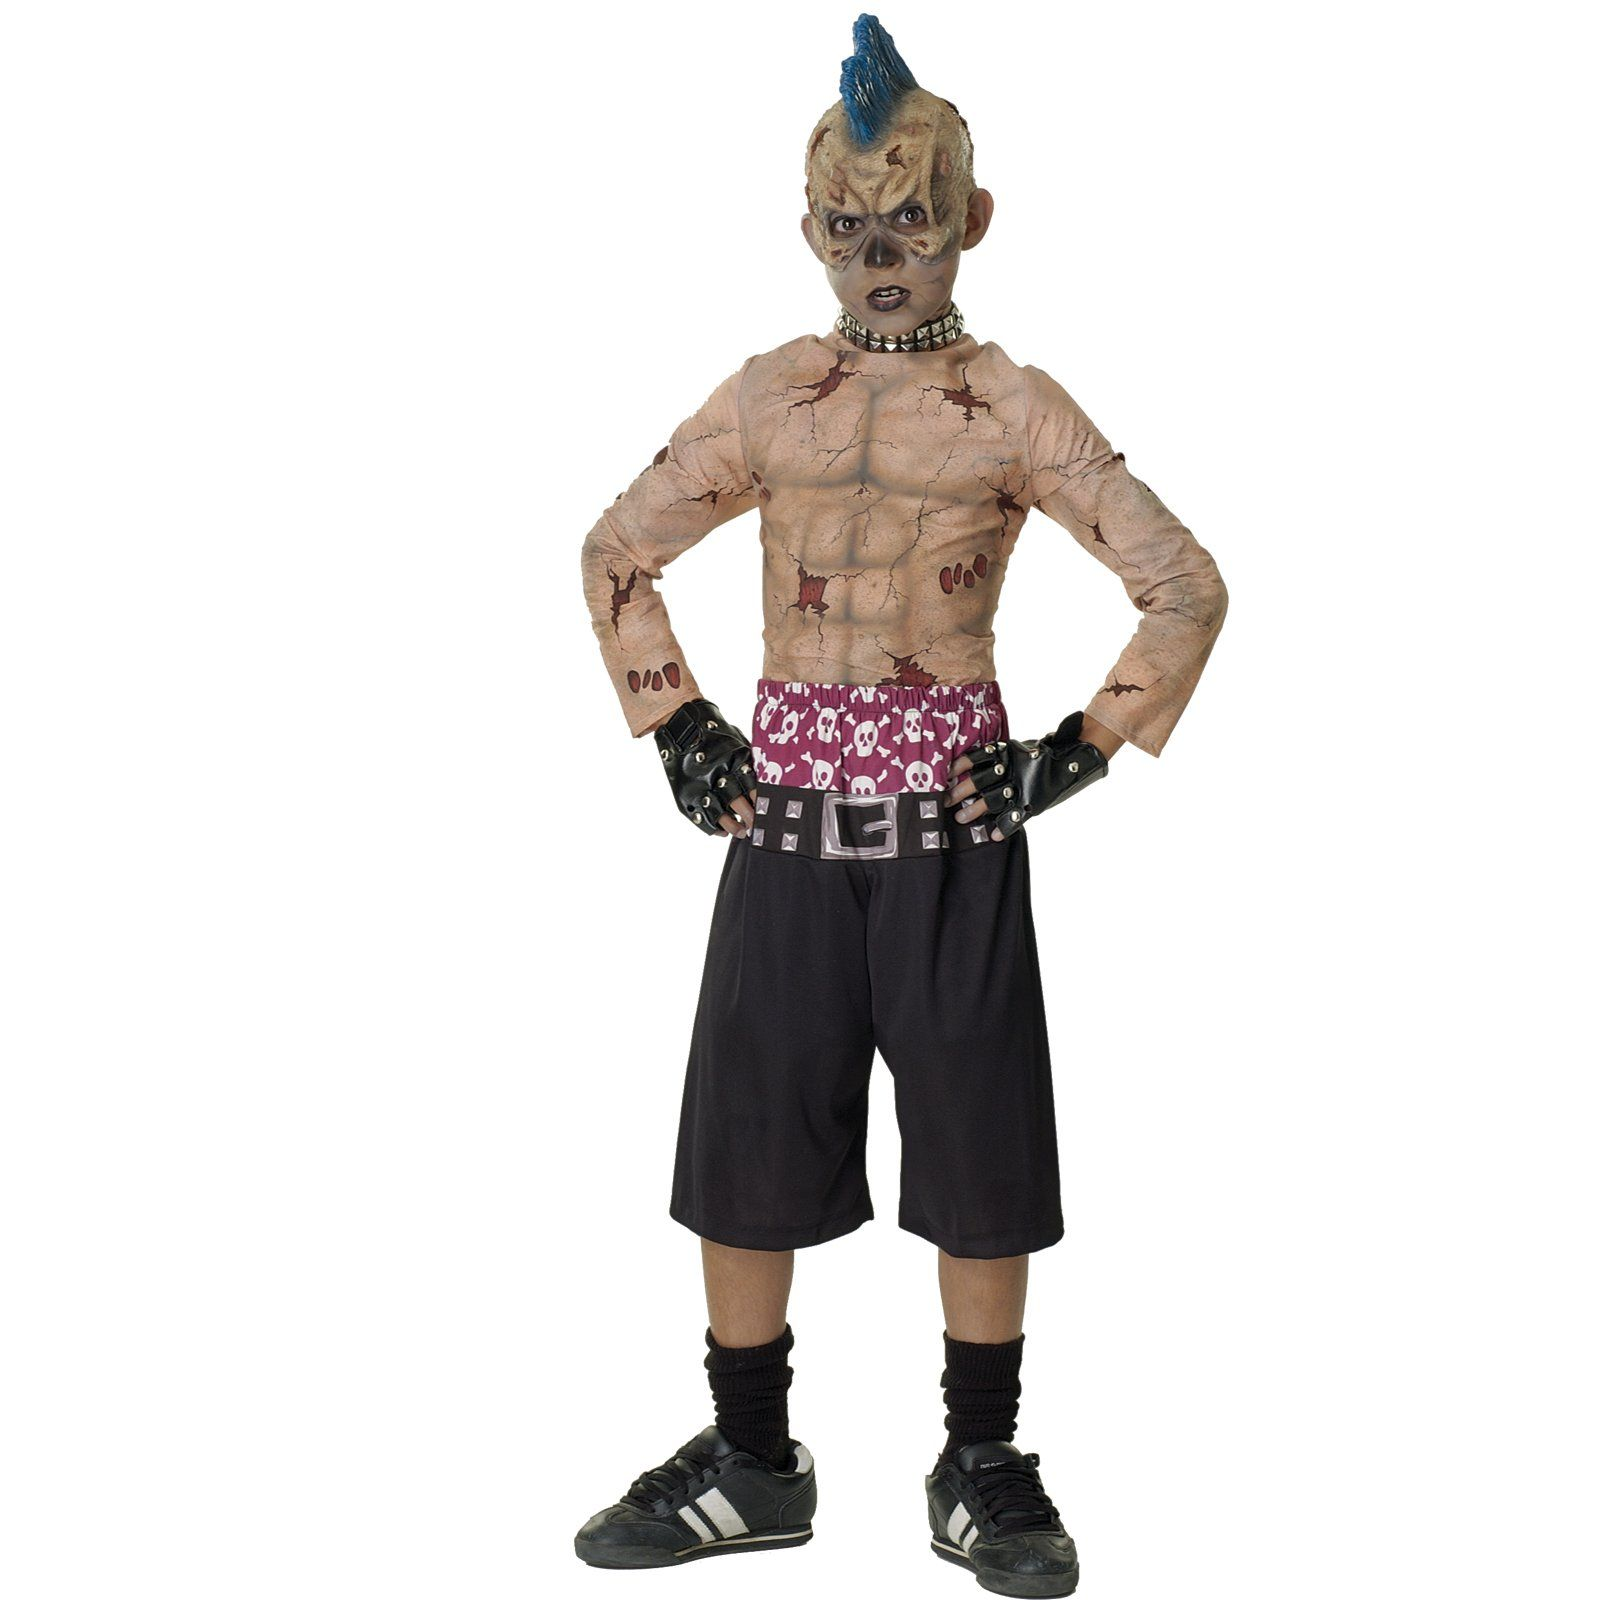 Zombie Skate Punk Boys Costume, RU882834, Halloween Costumes ...